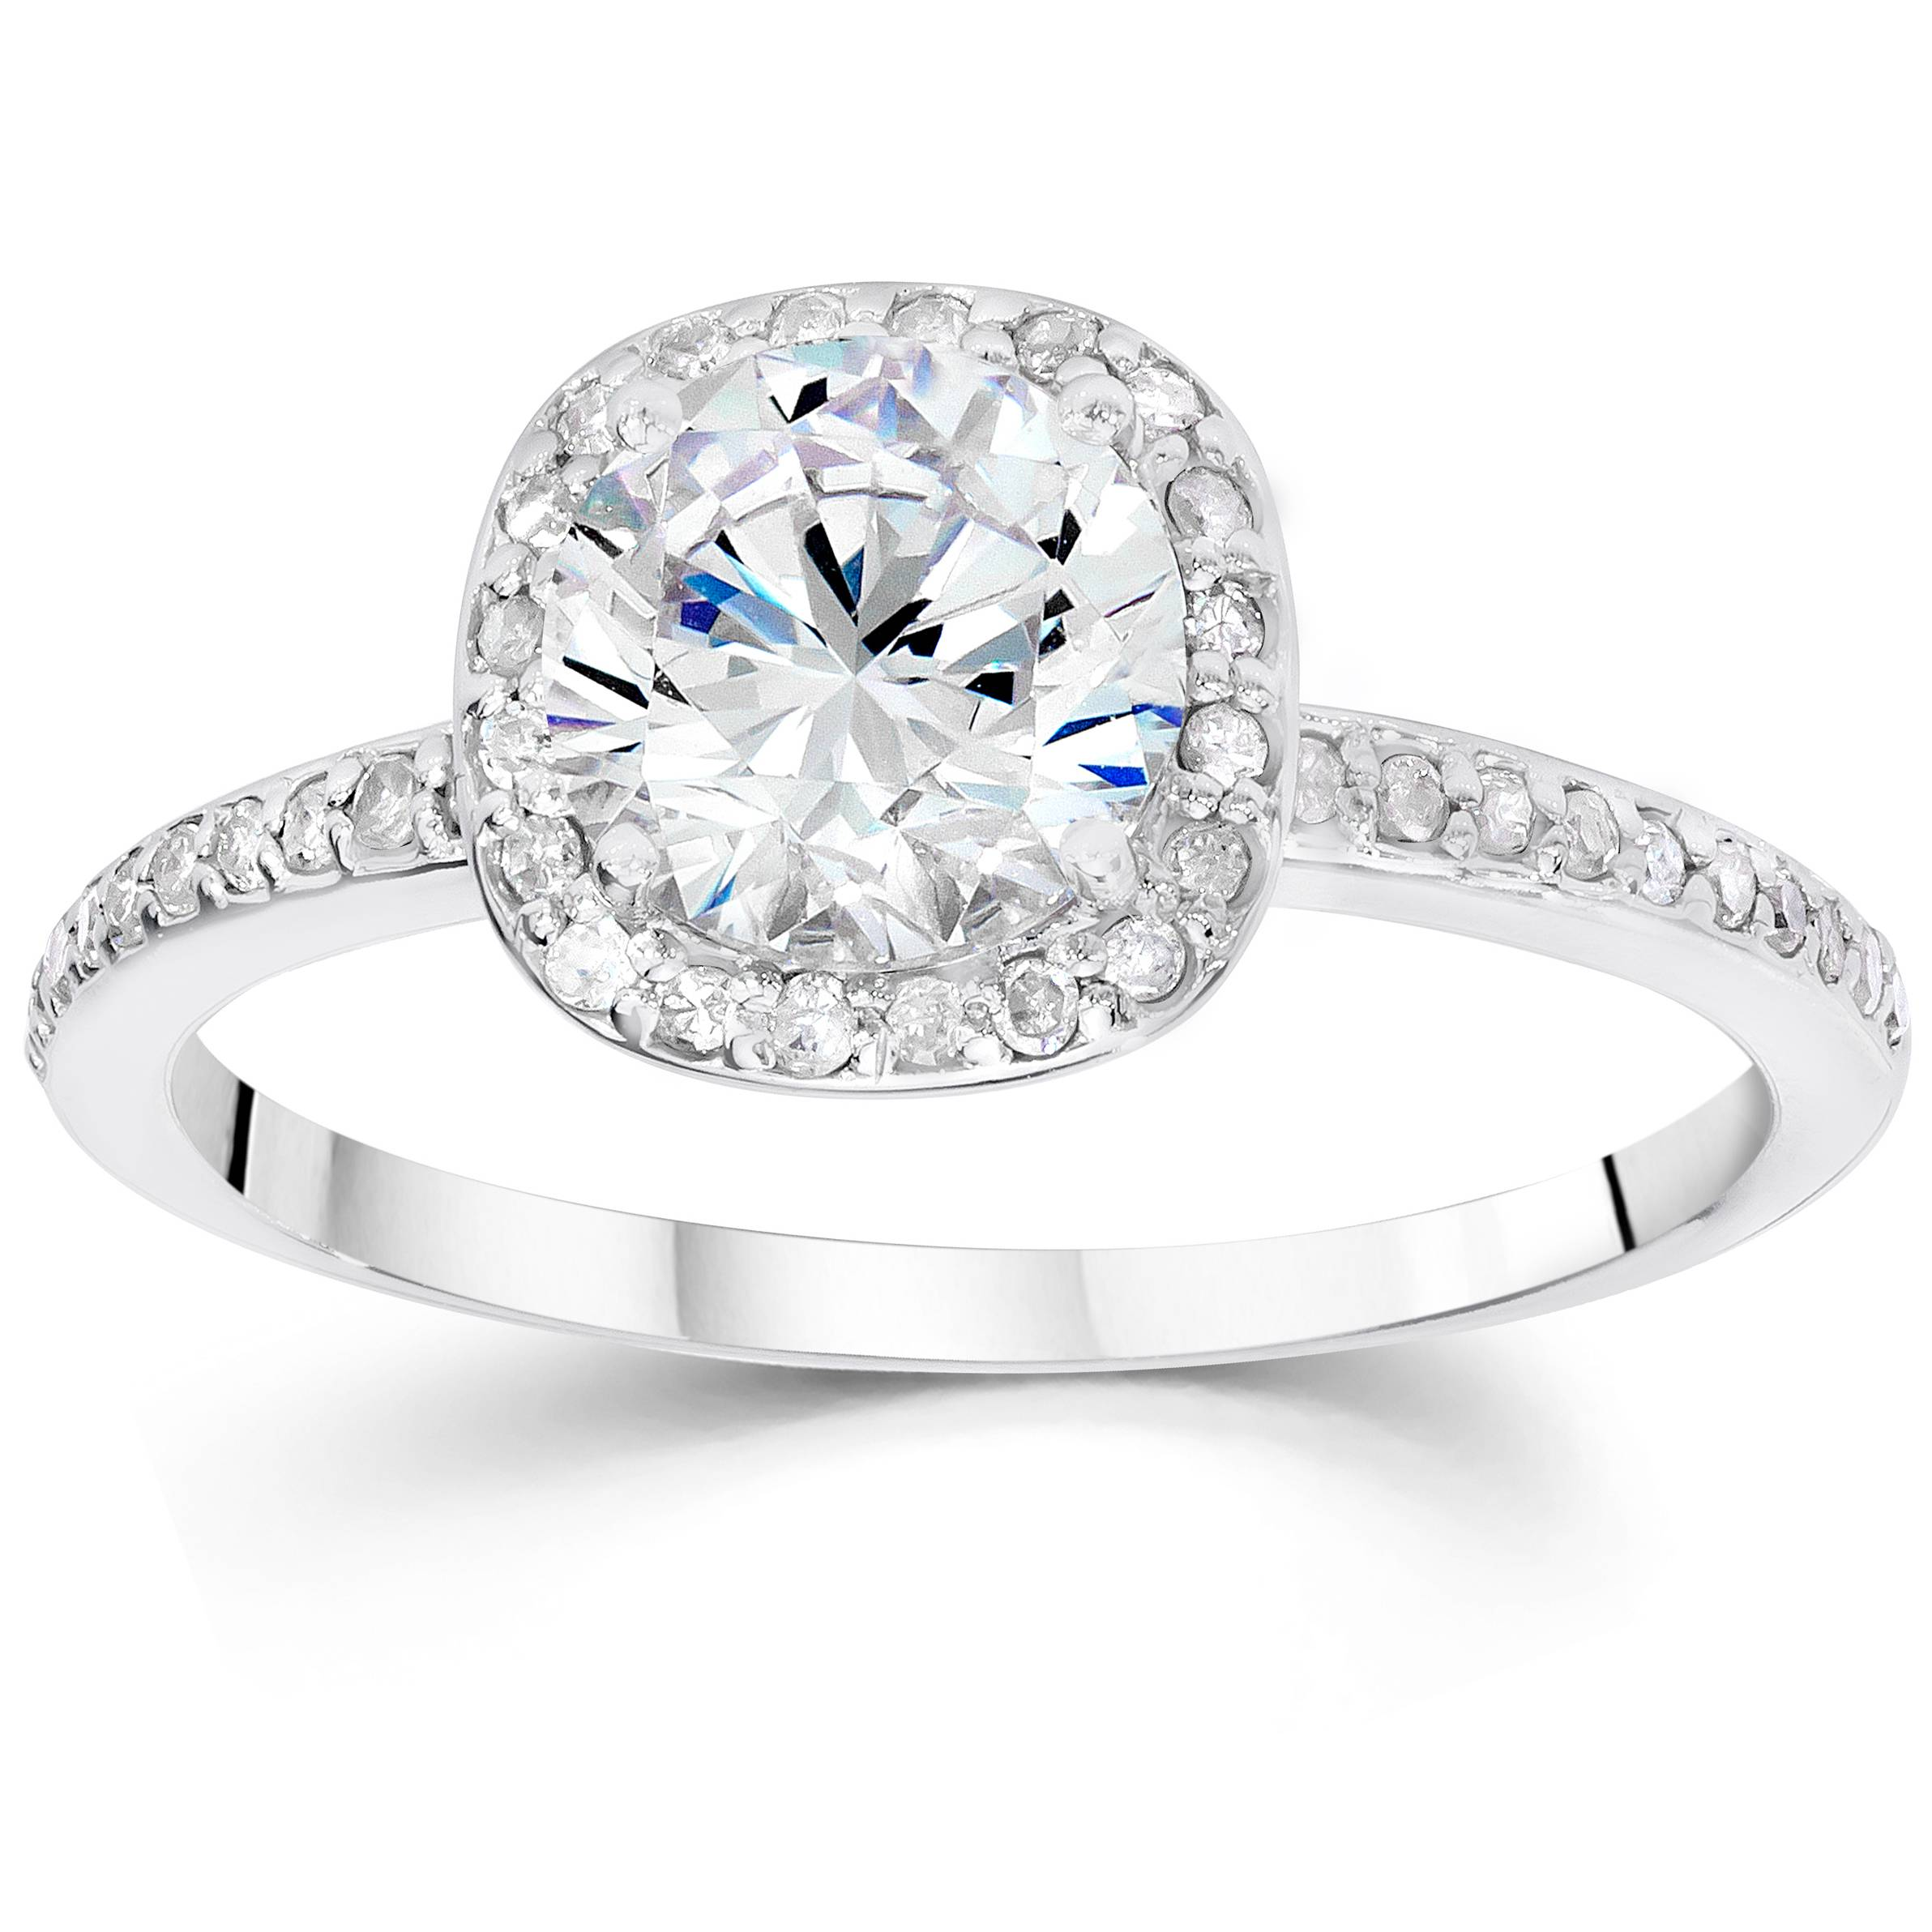 5 8ct Cushion Halo Diamond Engagement Ring 14K White Gold Solitaire Round Cut